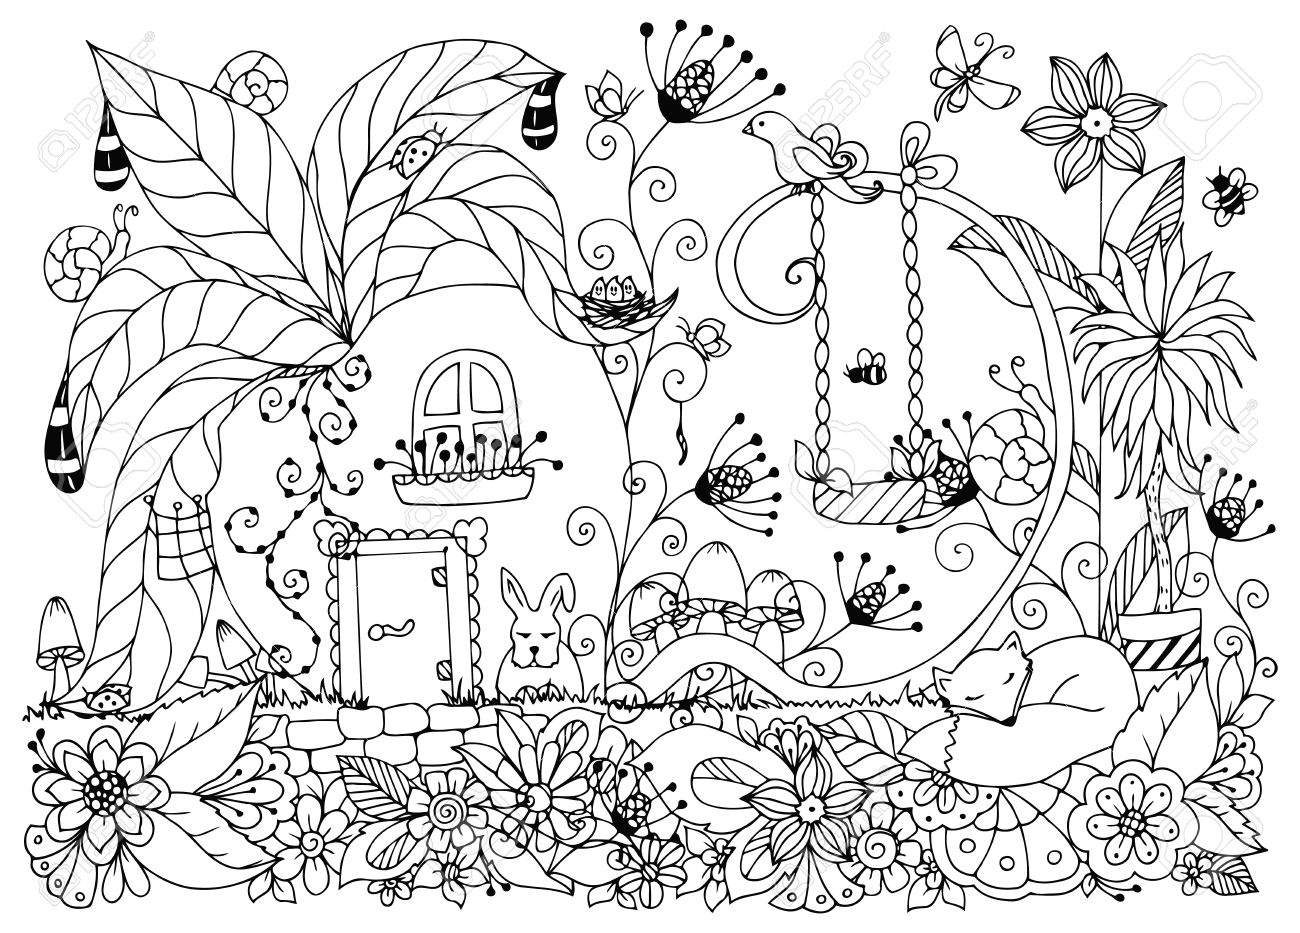 Vector Illustration Zen Tangle House Of Radishes Doodle Flowers